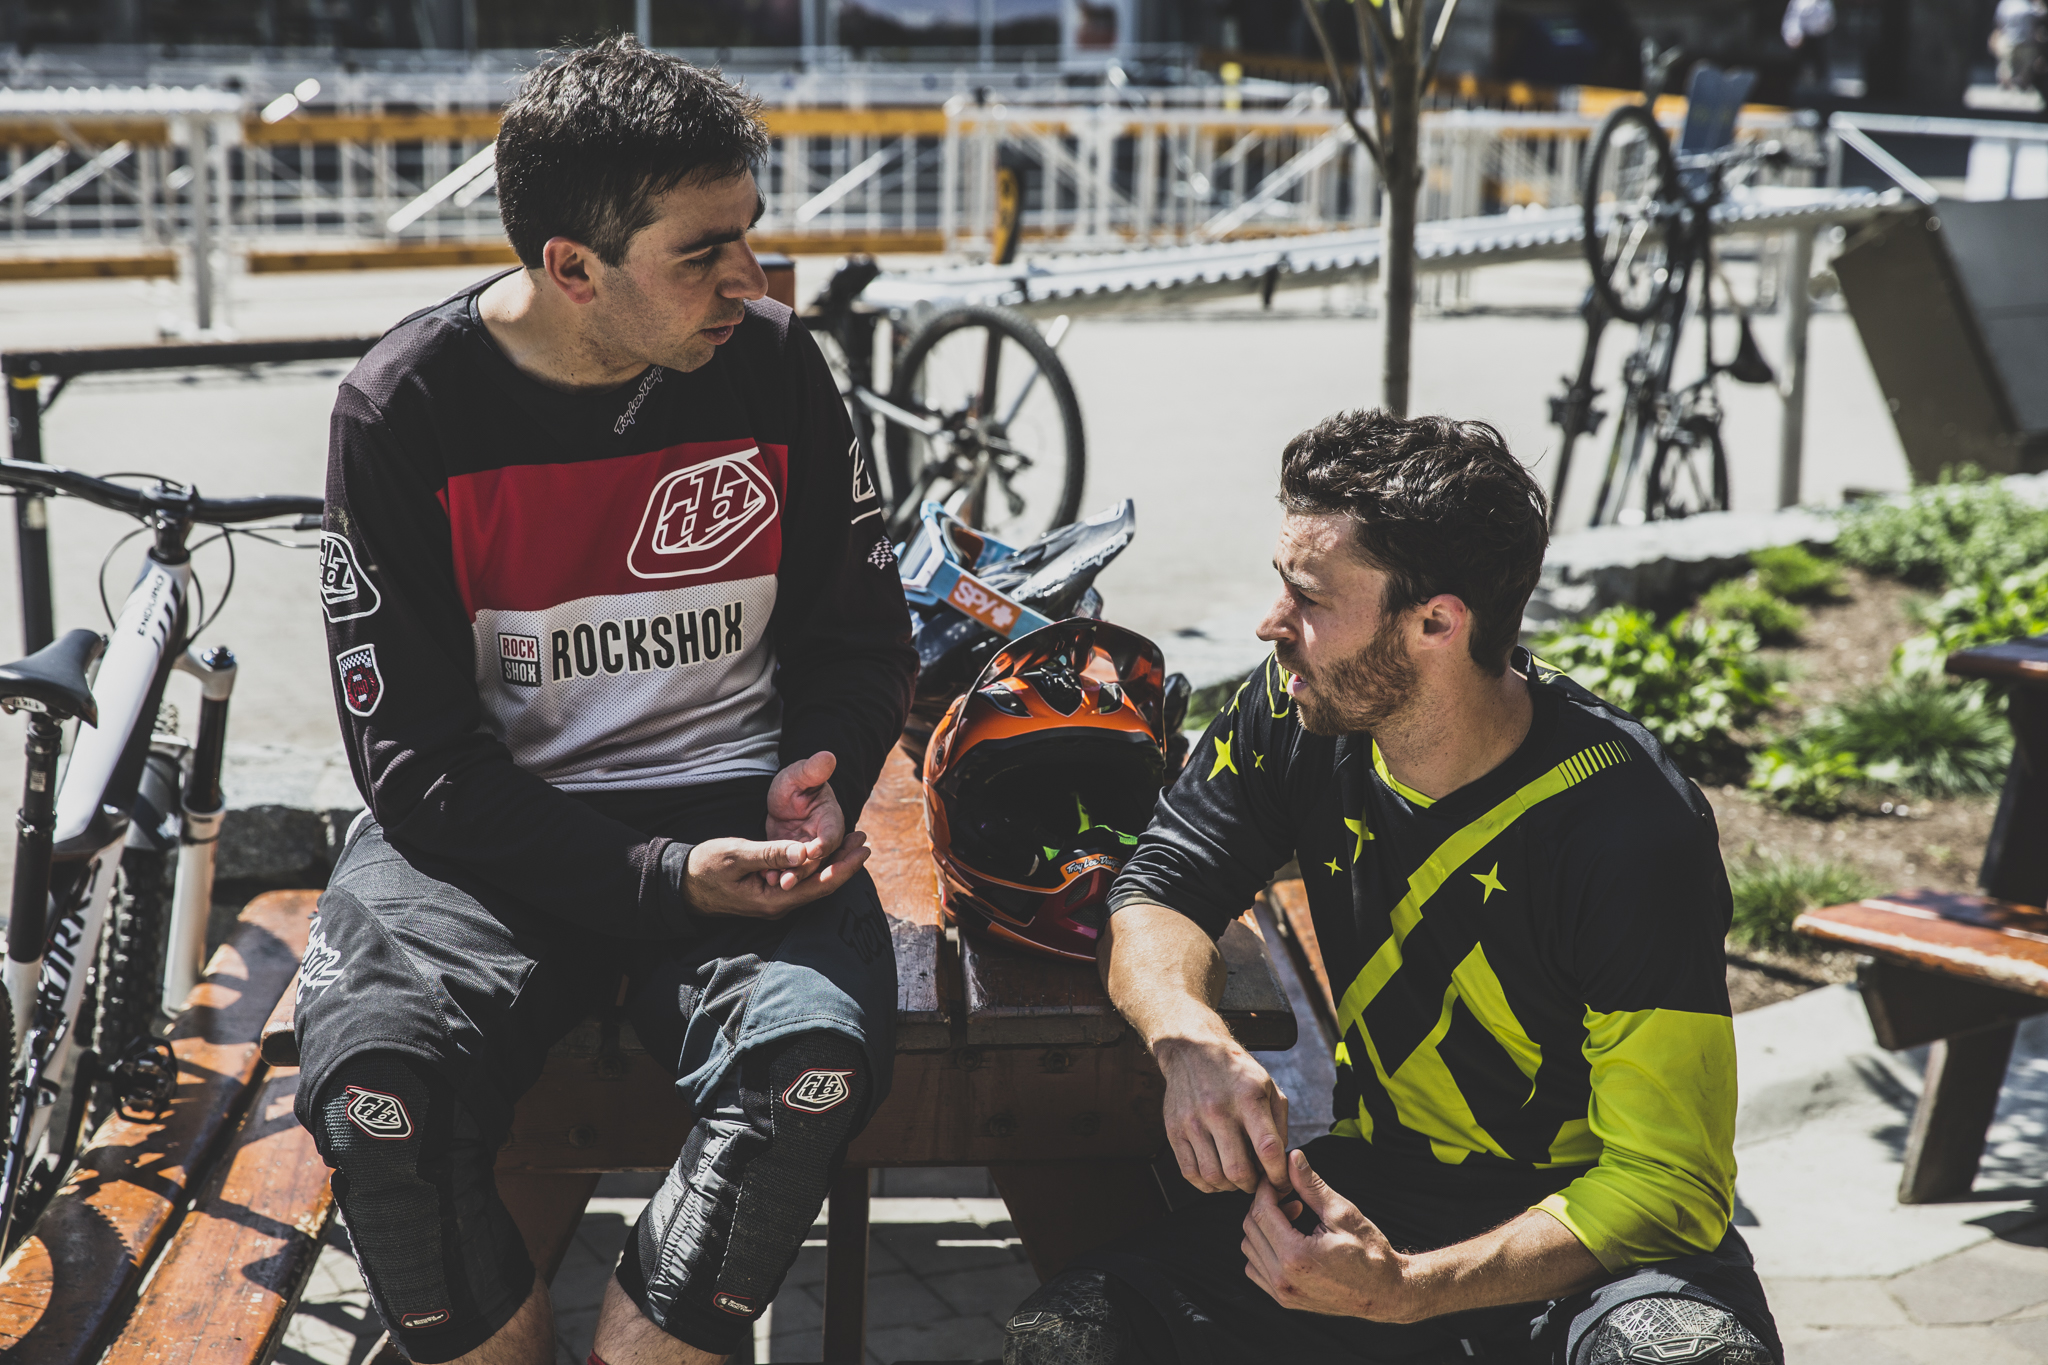 Chatting spring curves with Simon Citatti of SRAM/Rock Shox.